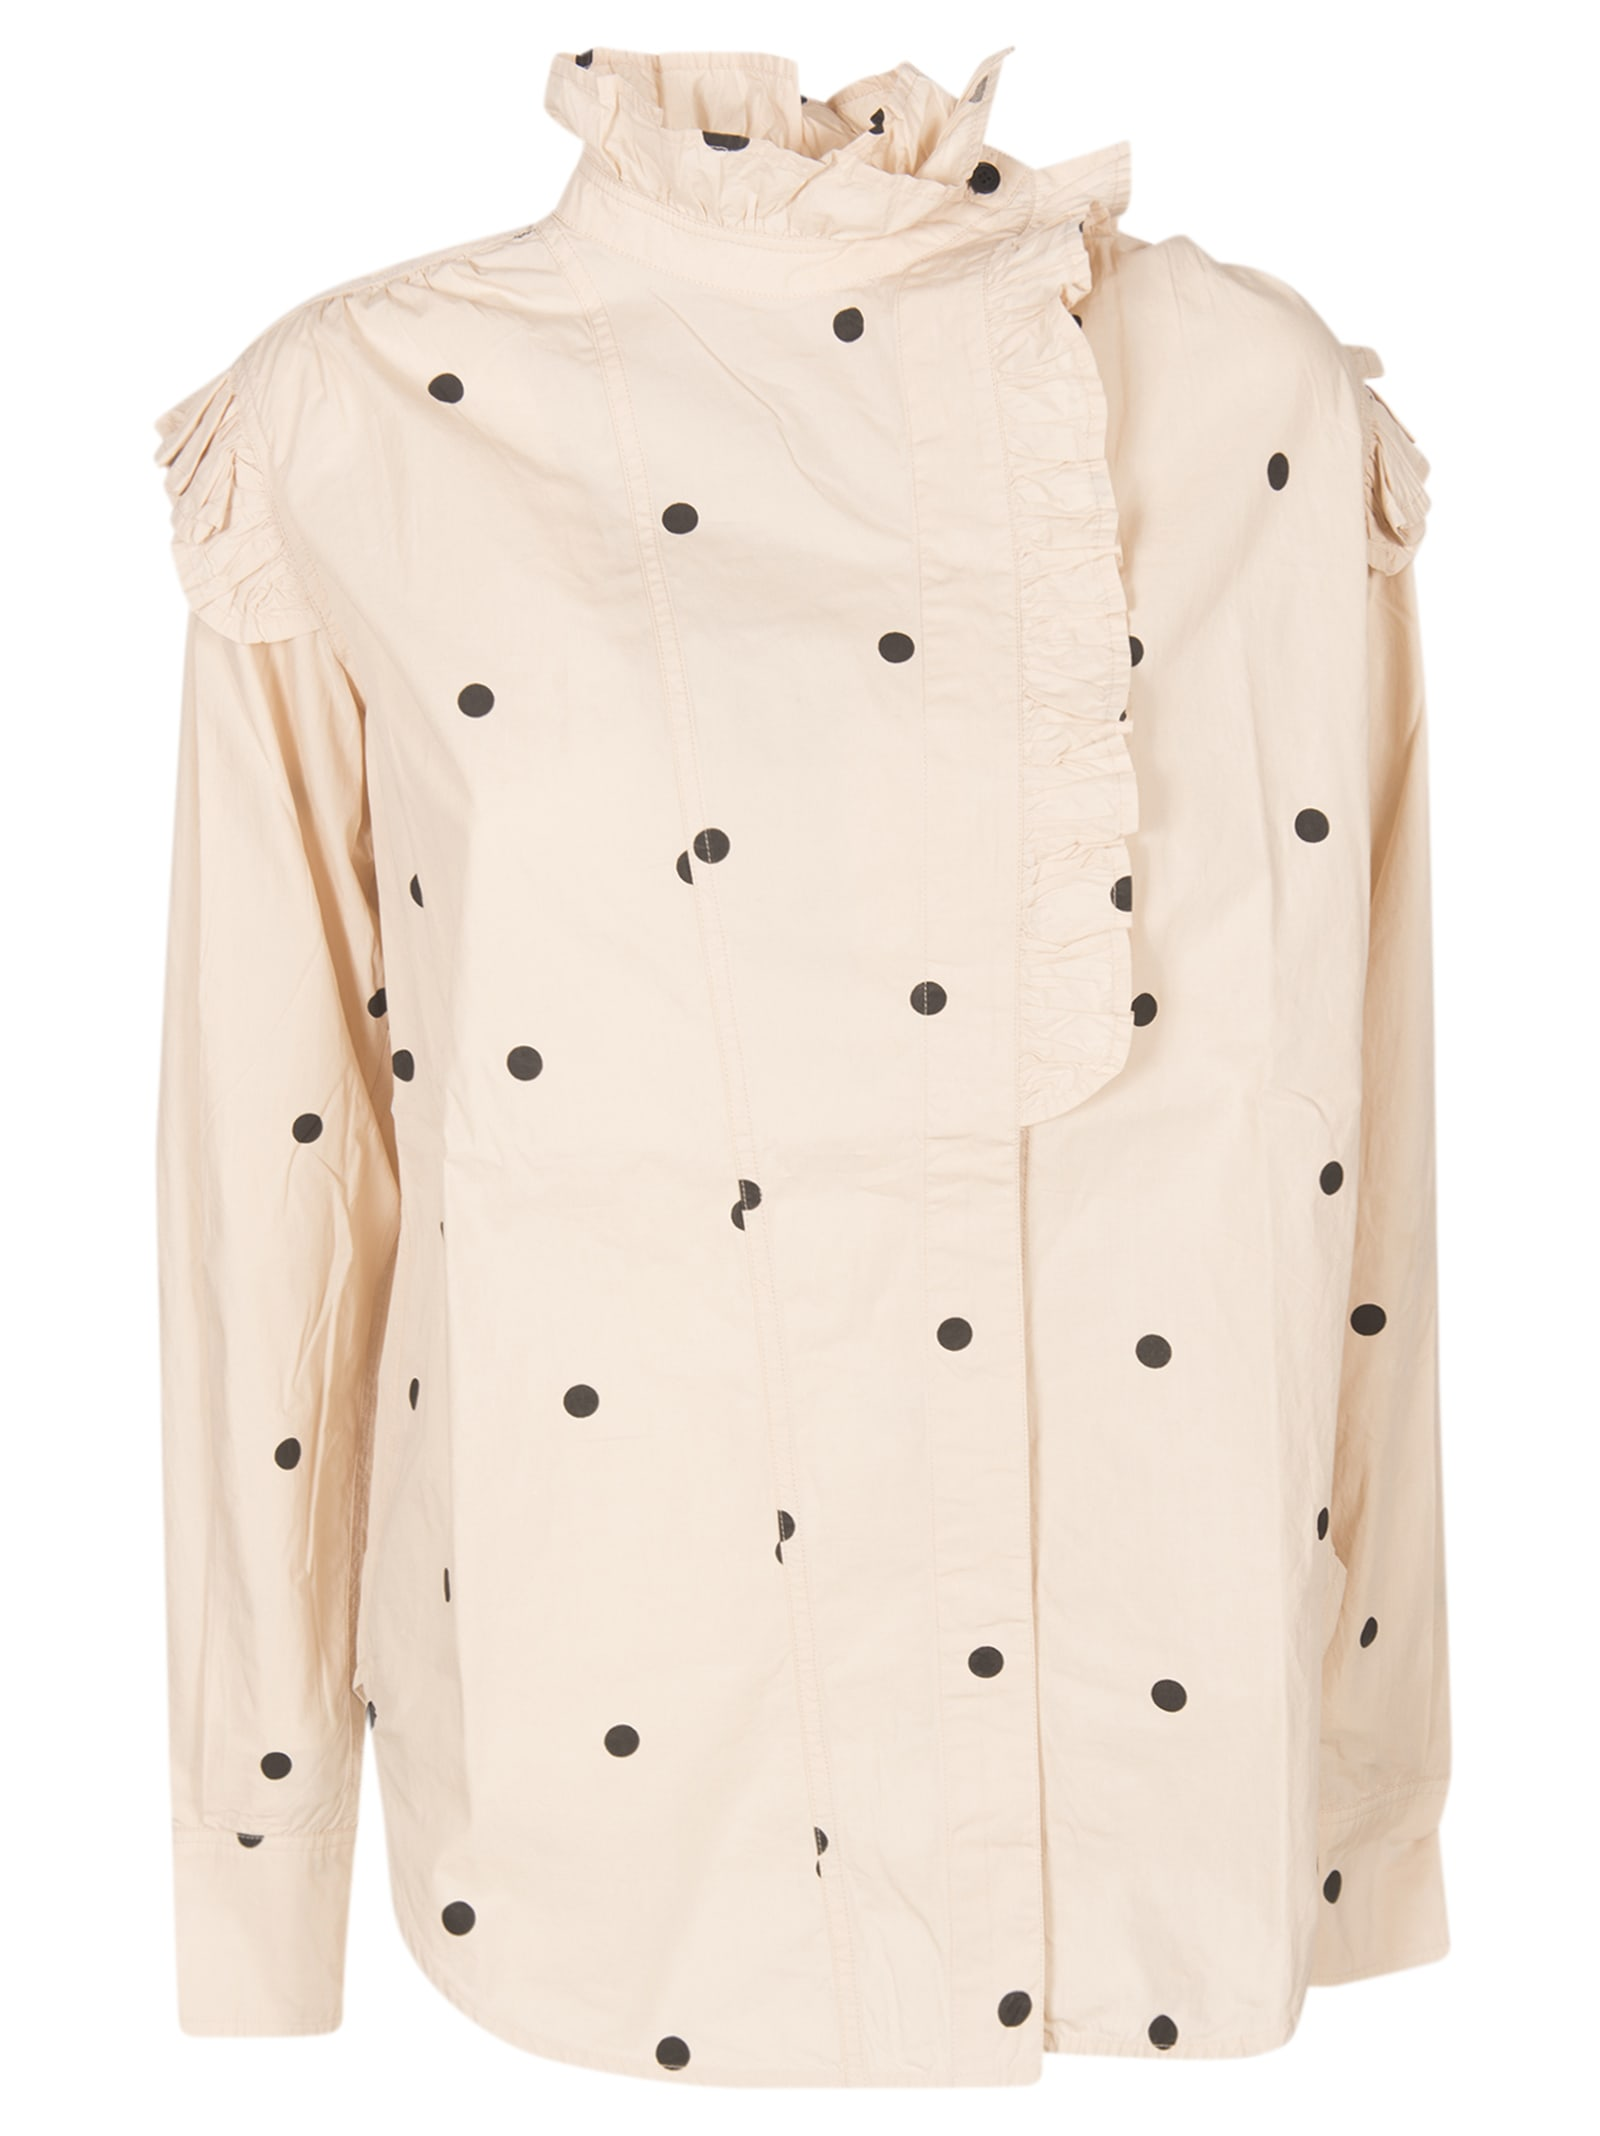 Dotted Print Blouse